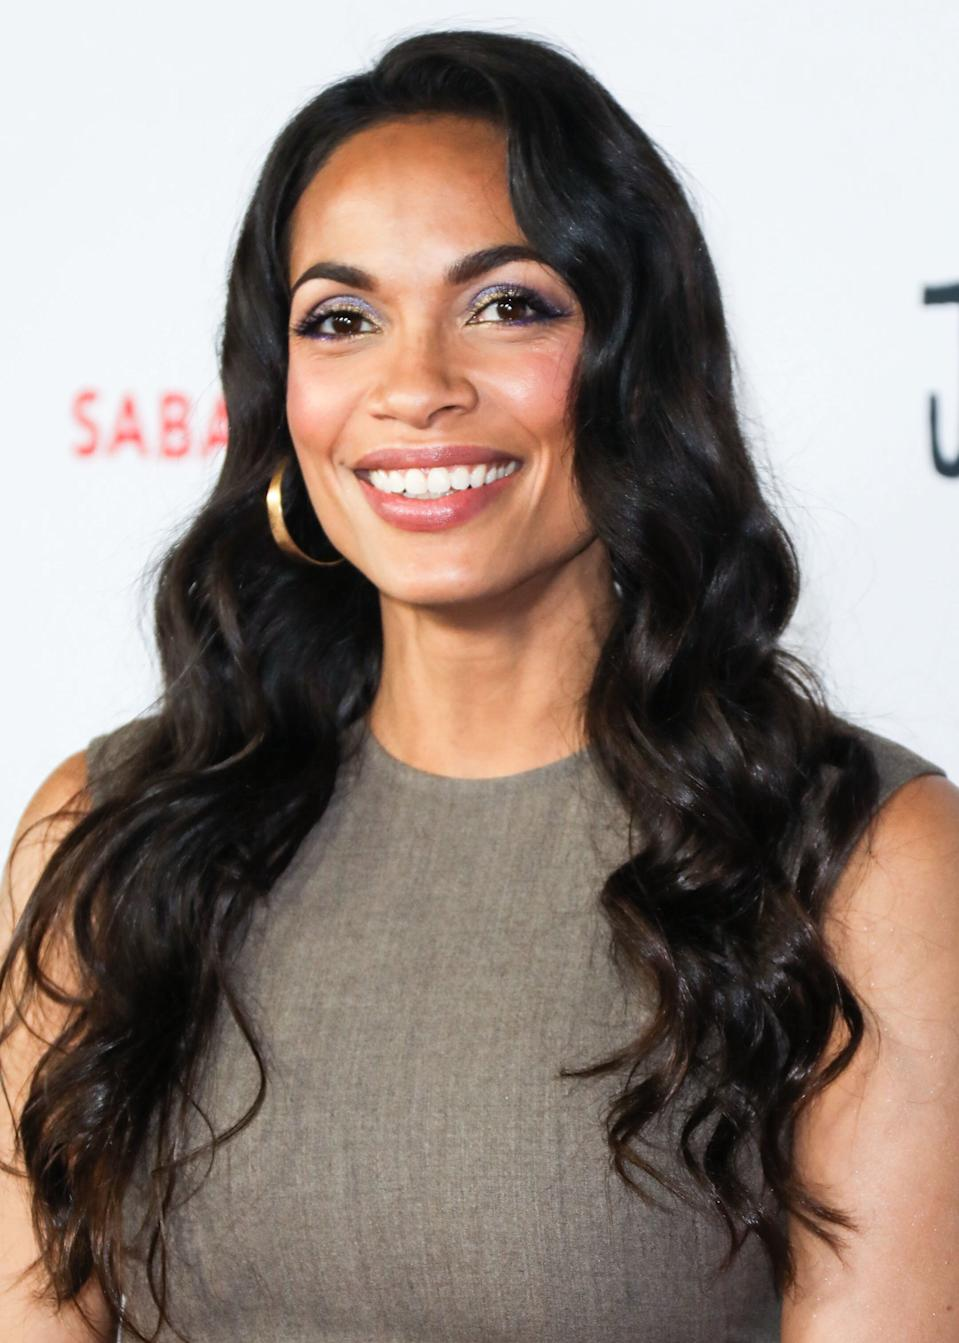 HOLLYWOOD, LOS ANGELES, CALIFORNIA, USA - OCTOBER 14: Actress Rosario Dawson arrives at the Los Angeles Premiere Of Saban Films' 'Jay and Silent Bob Reboot' held at the TCL Chinese Theatre IMAX on October 14, 2019 in Hollywood, Los Angeles, California, United States. (Photo by David Acosta/Image Press Agency/Sipa USA)